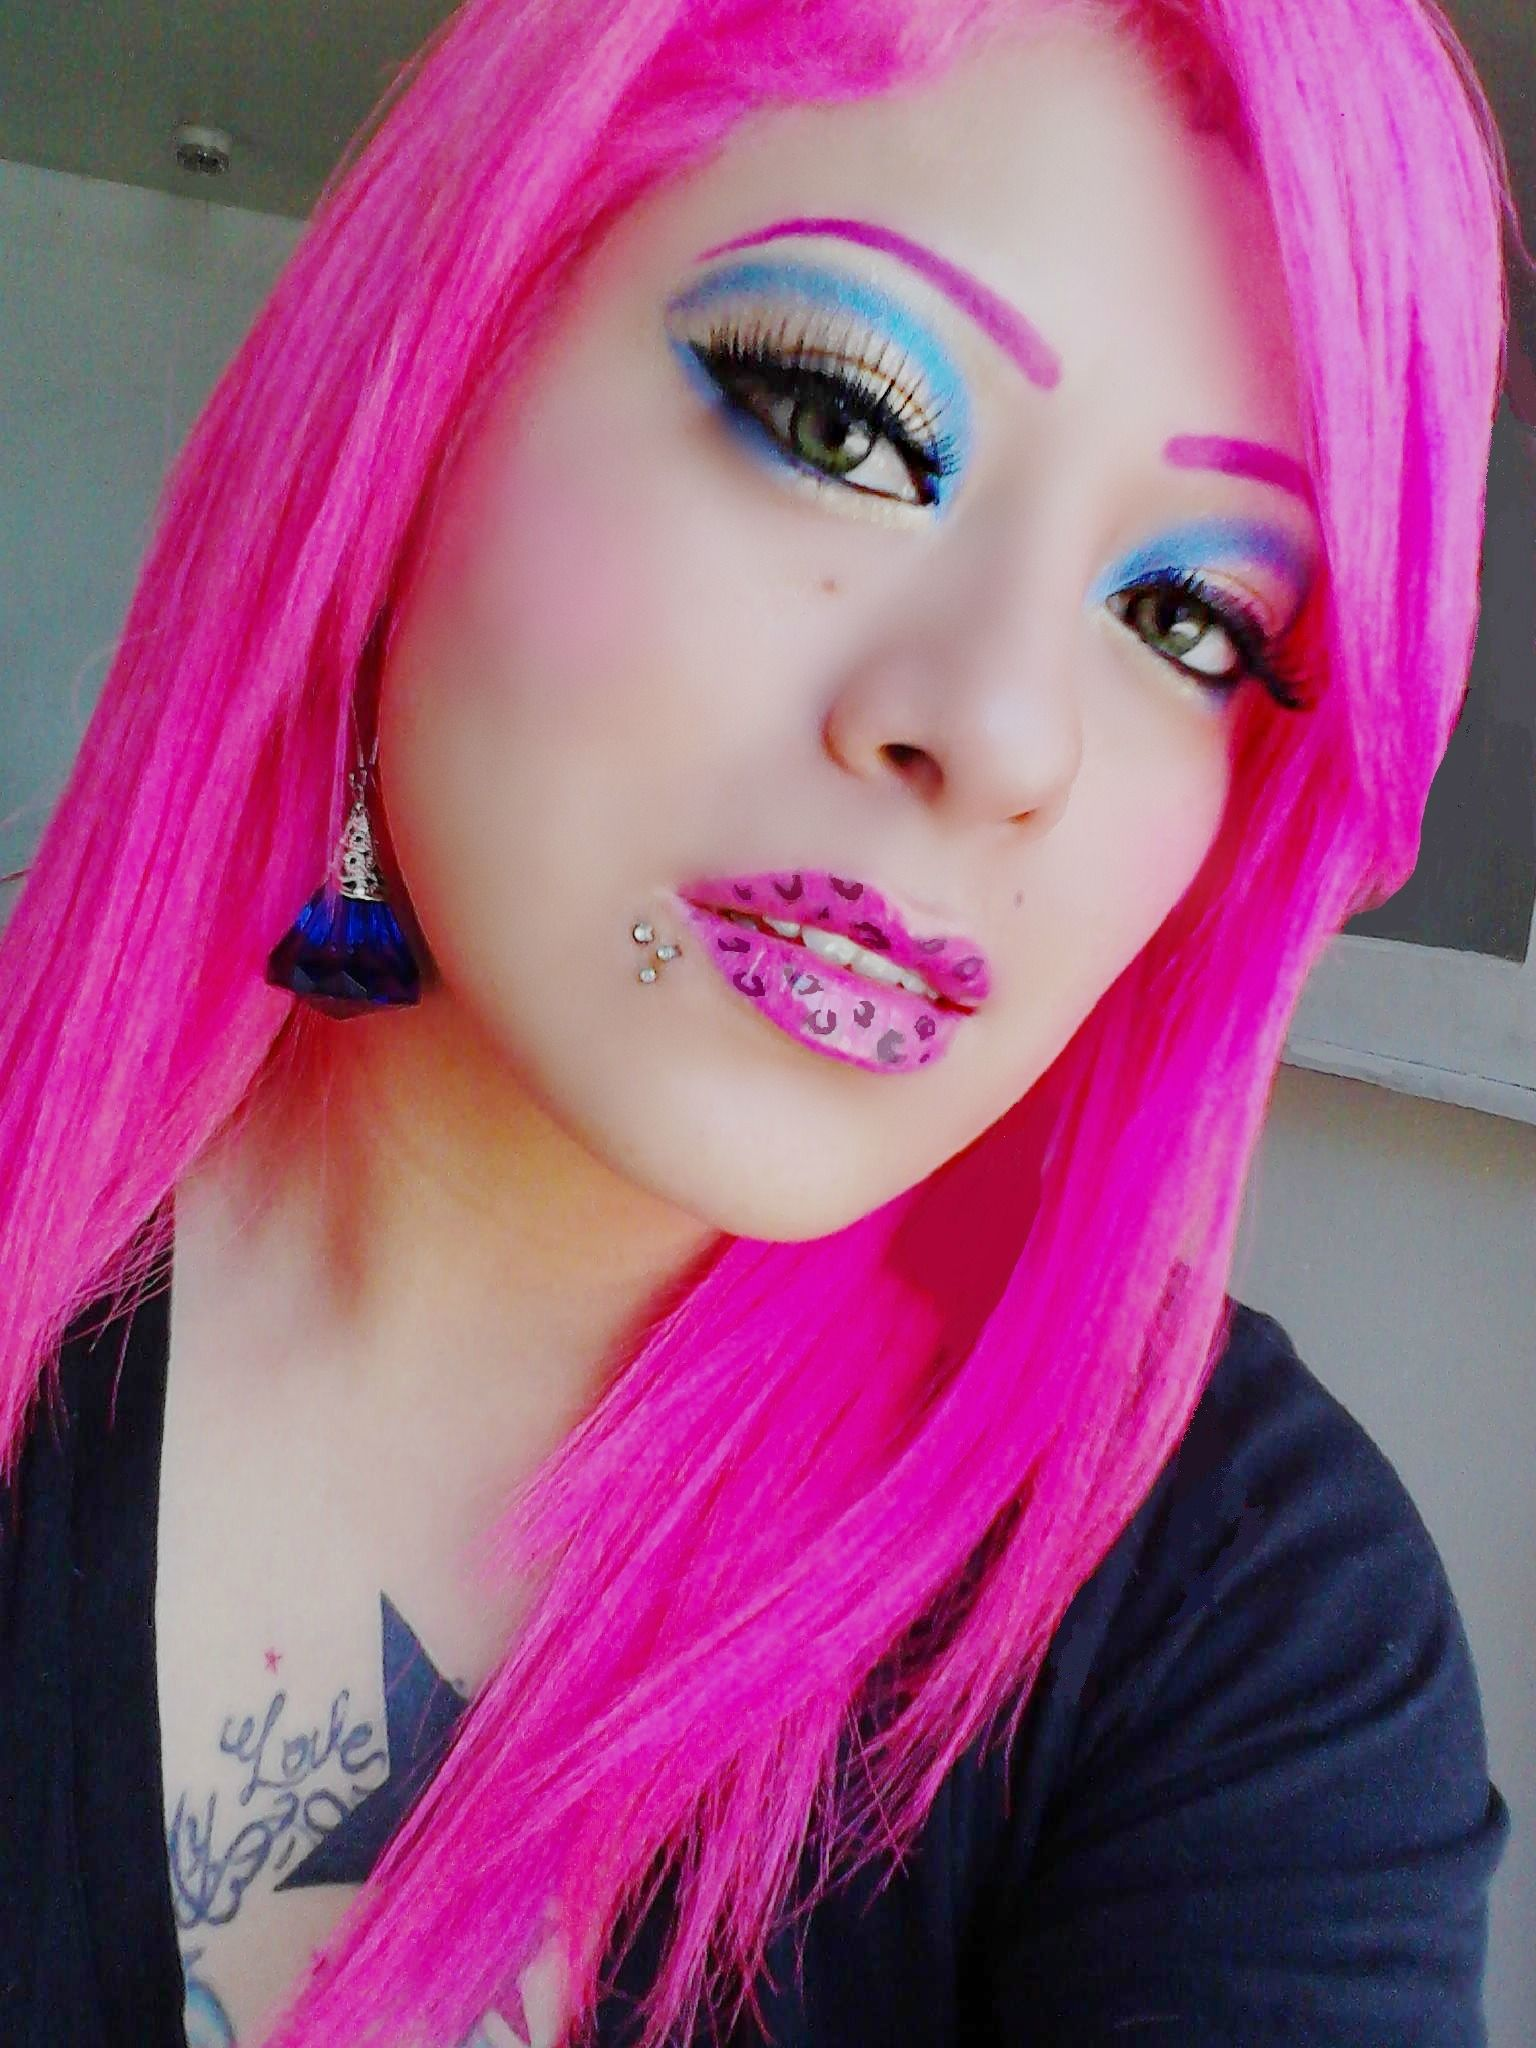 Her Makeup Looks Stupid But That Neon Hair Colour Need